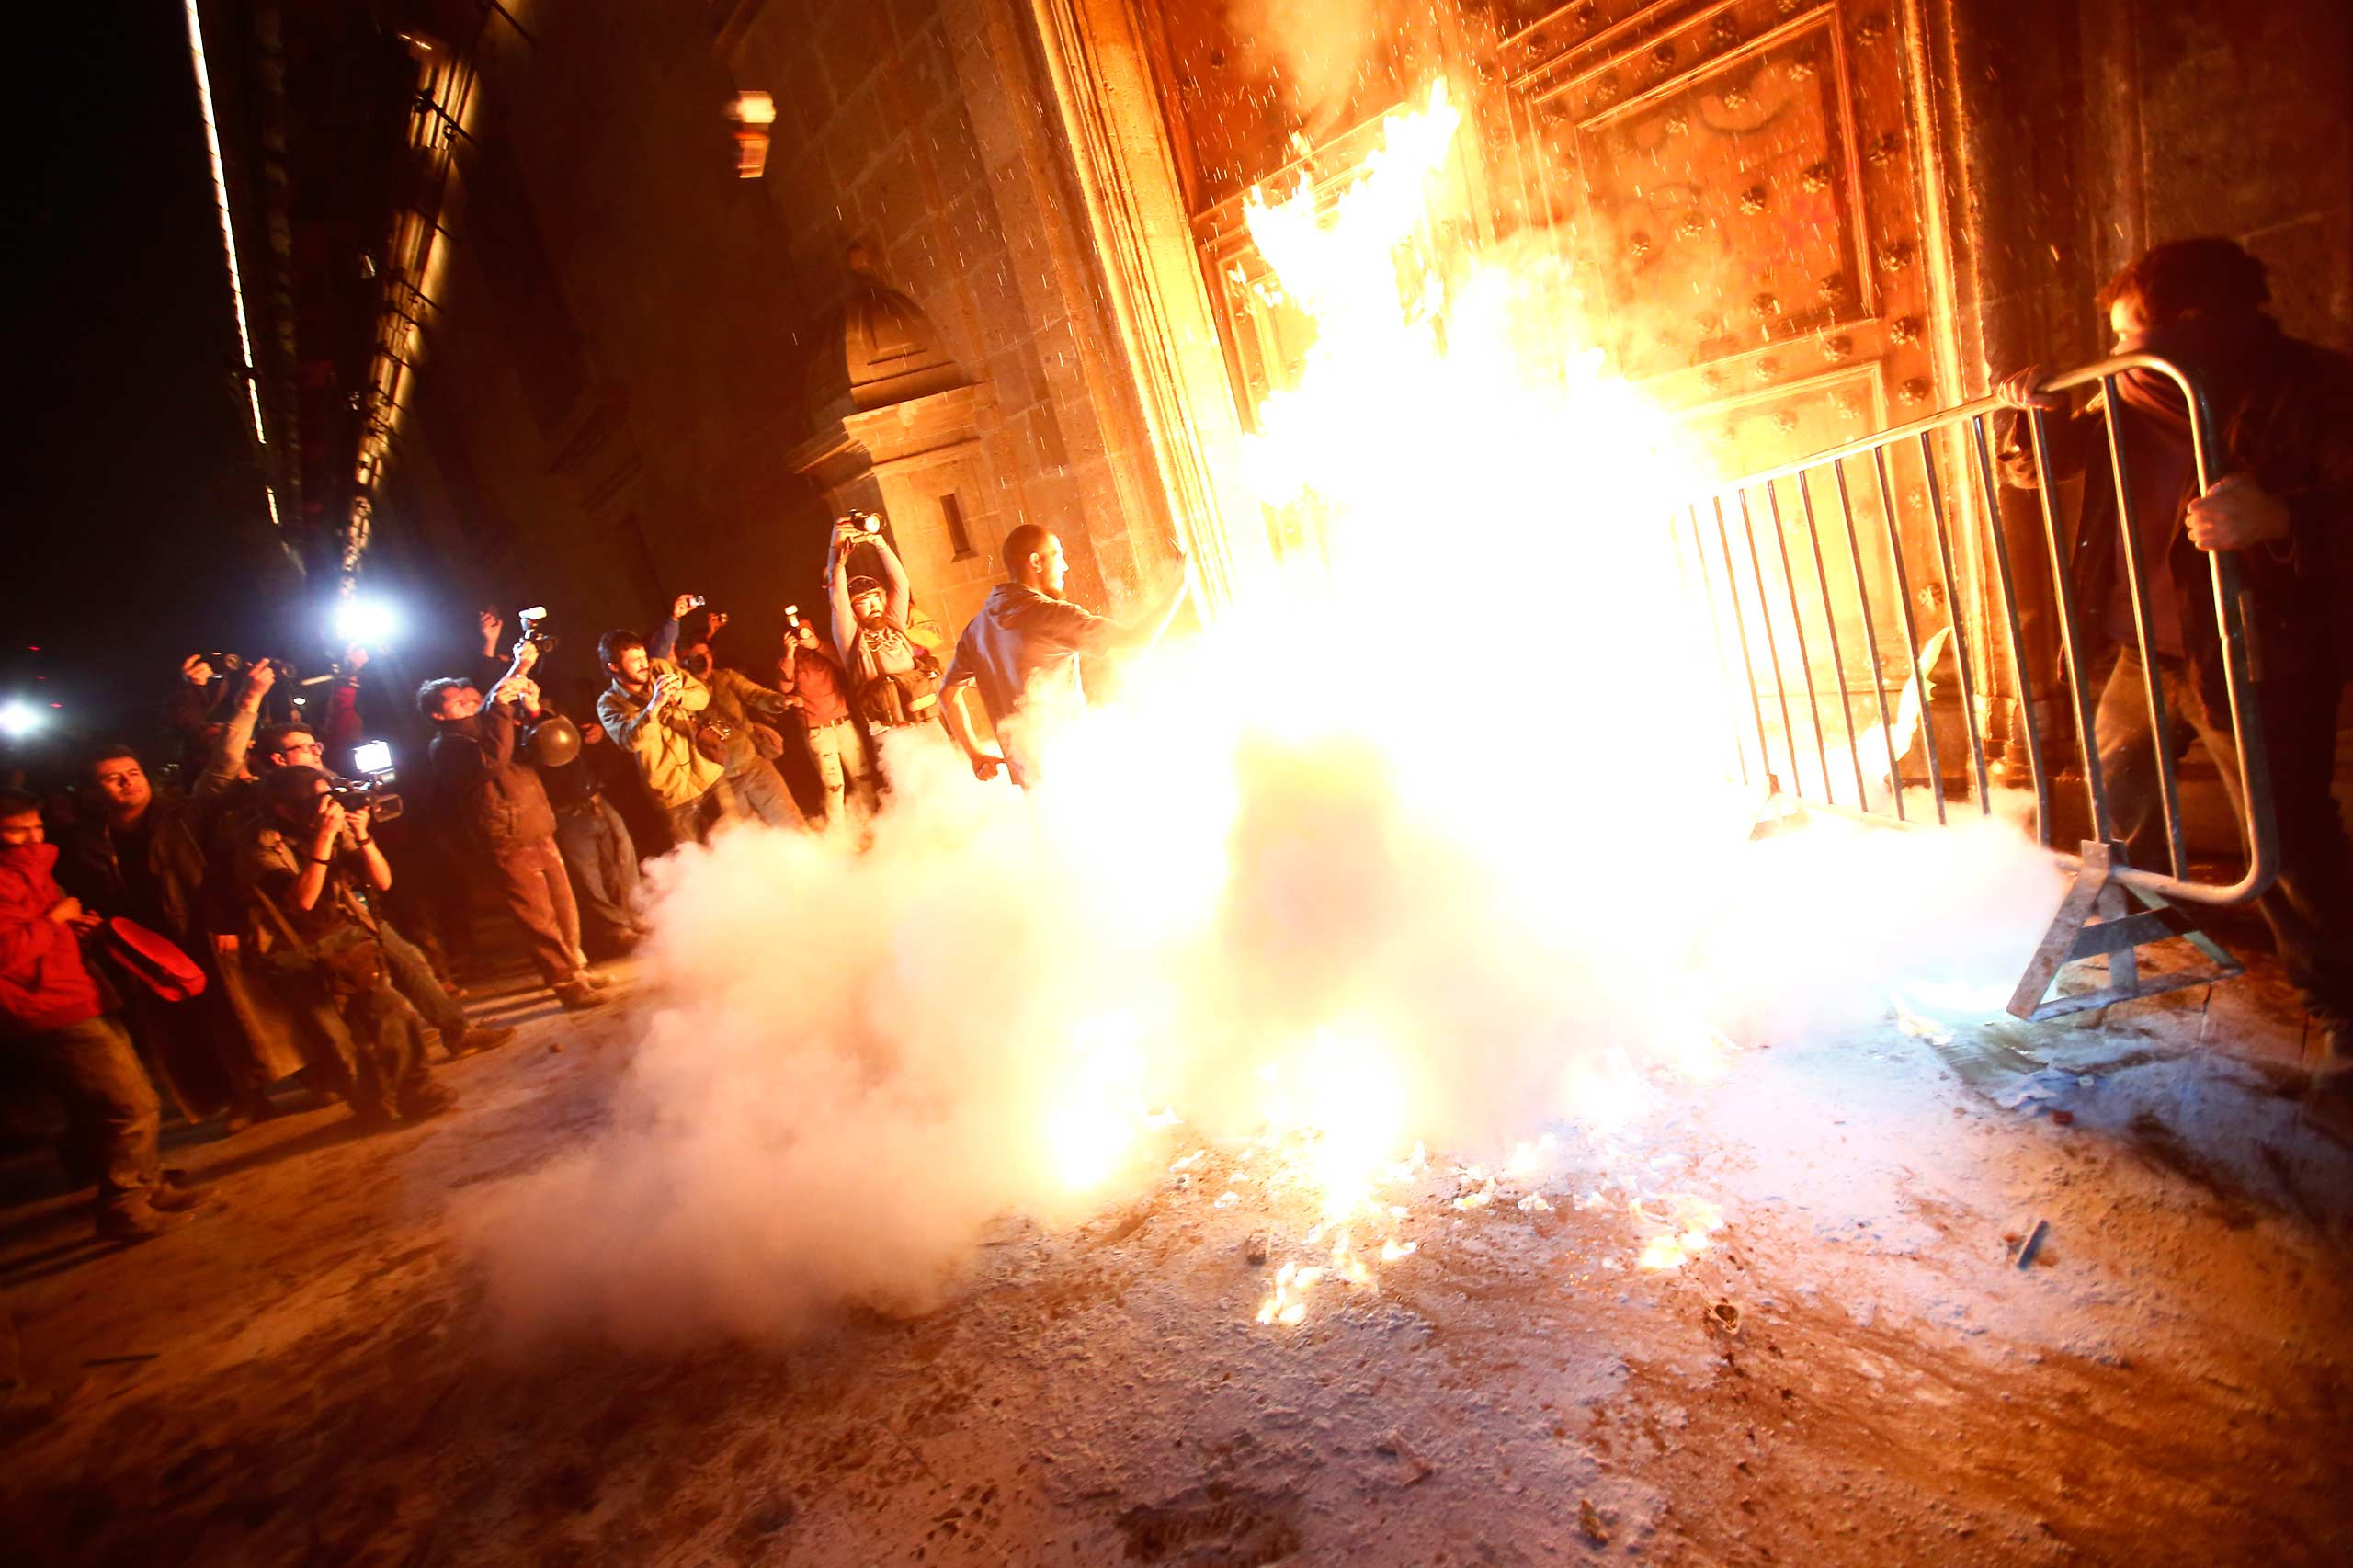 A group of protesters set fire to the wooden door of Mexican President Enrique Pena Nieto's ceremonial palace, during a protest in Mexico City, November 8, 2014.